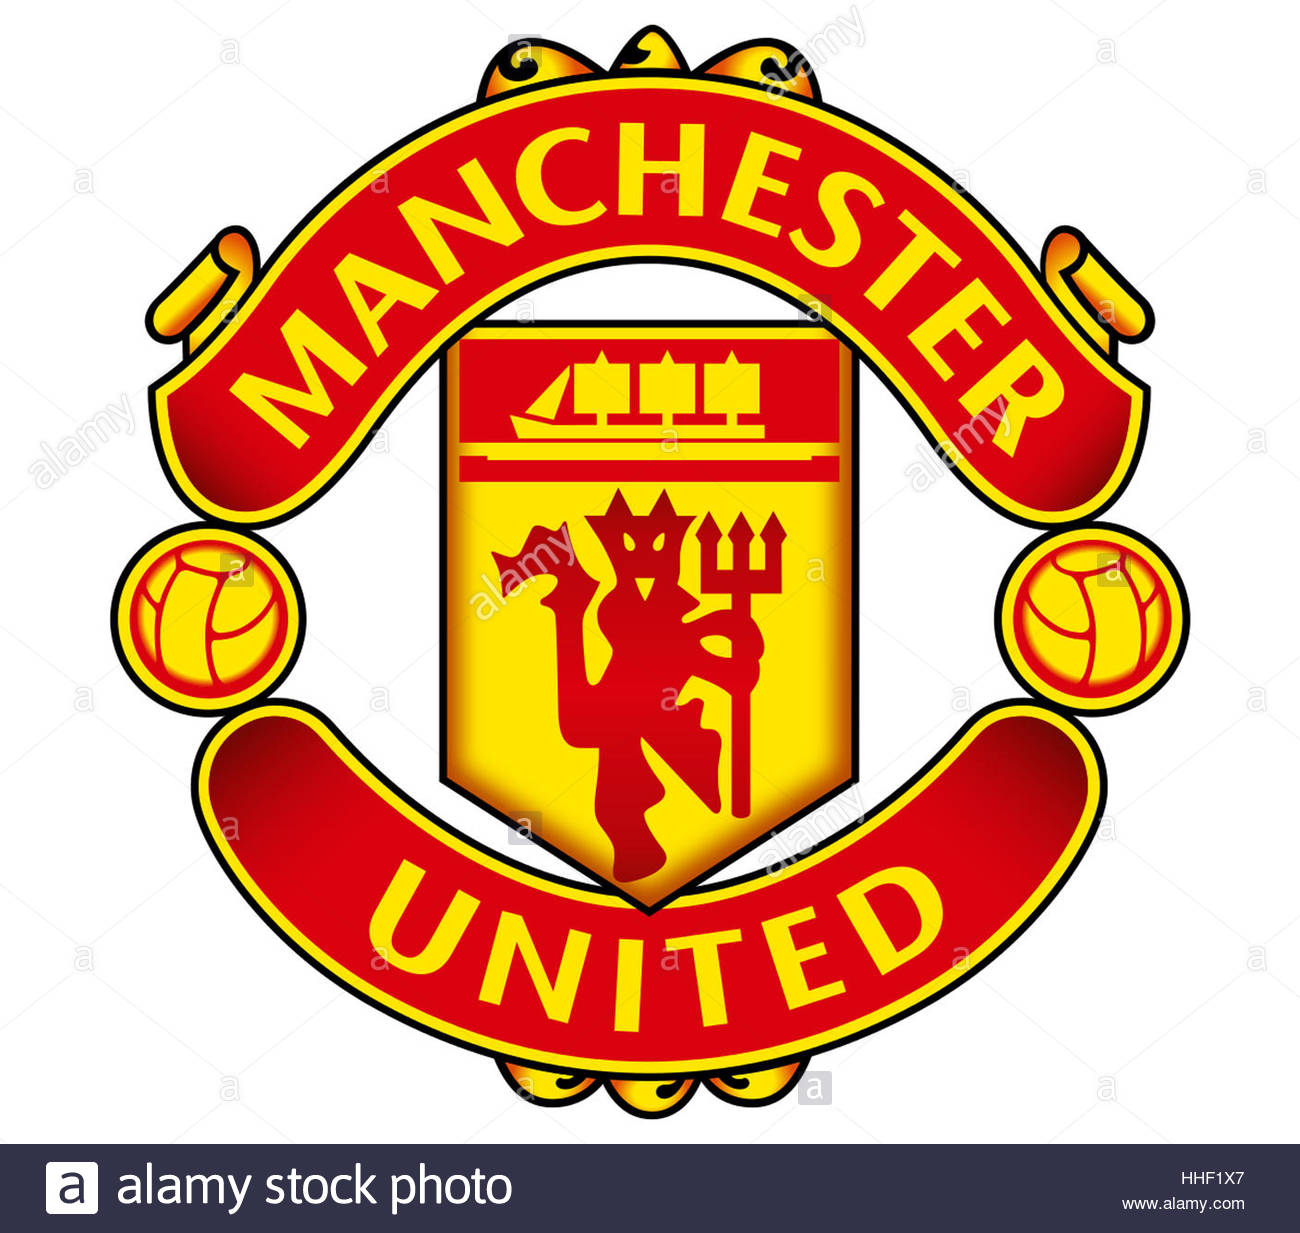 Manchester united icon logo stock photo royalty free image manchester united icon logo stopboris Gallery